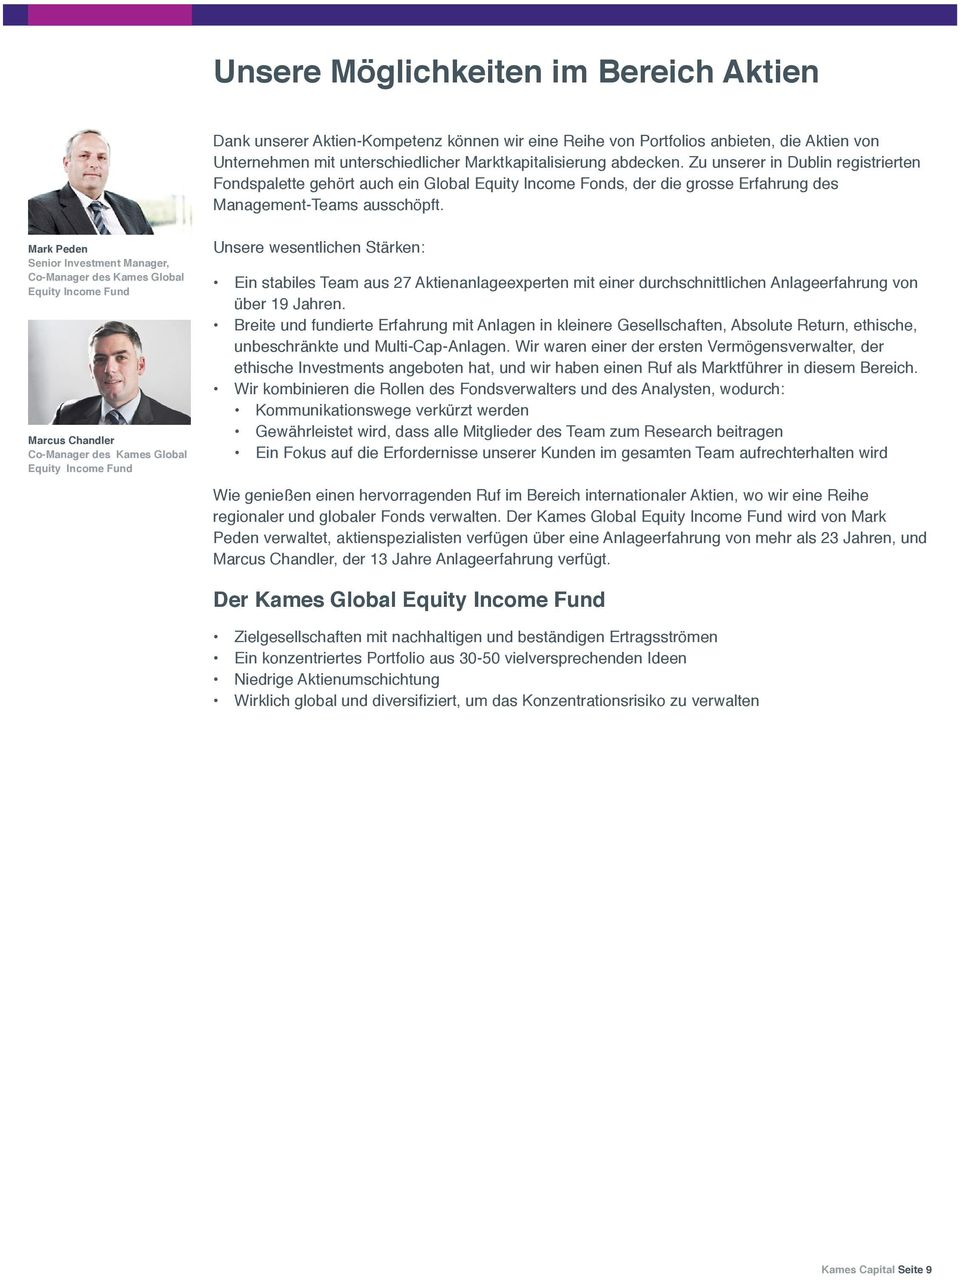 Mark Peden Senior Investment Manager, Co-Manager des Kames Global Equity Income Fund Marcus Chandler Co-Manager des Kames Global Equity Income Fund Unsere wesentlichen Stärken: Ein stabiles Team aus